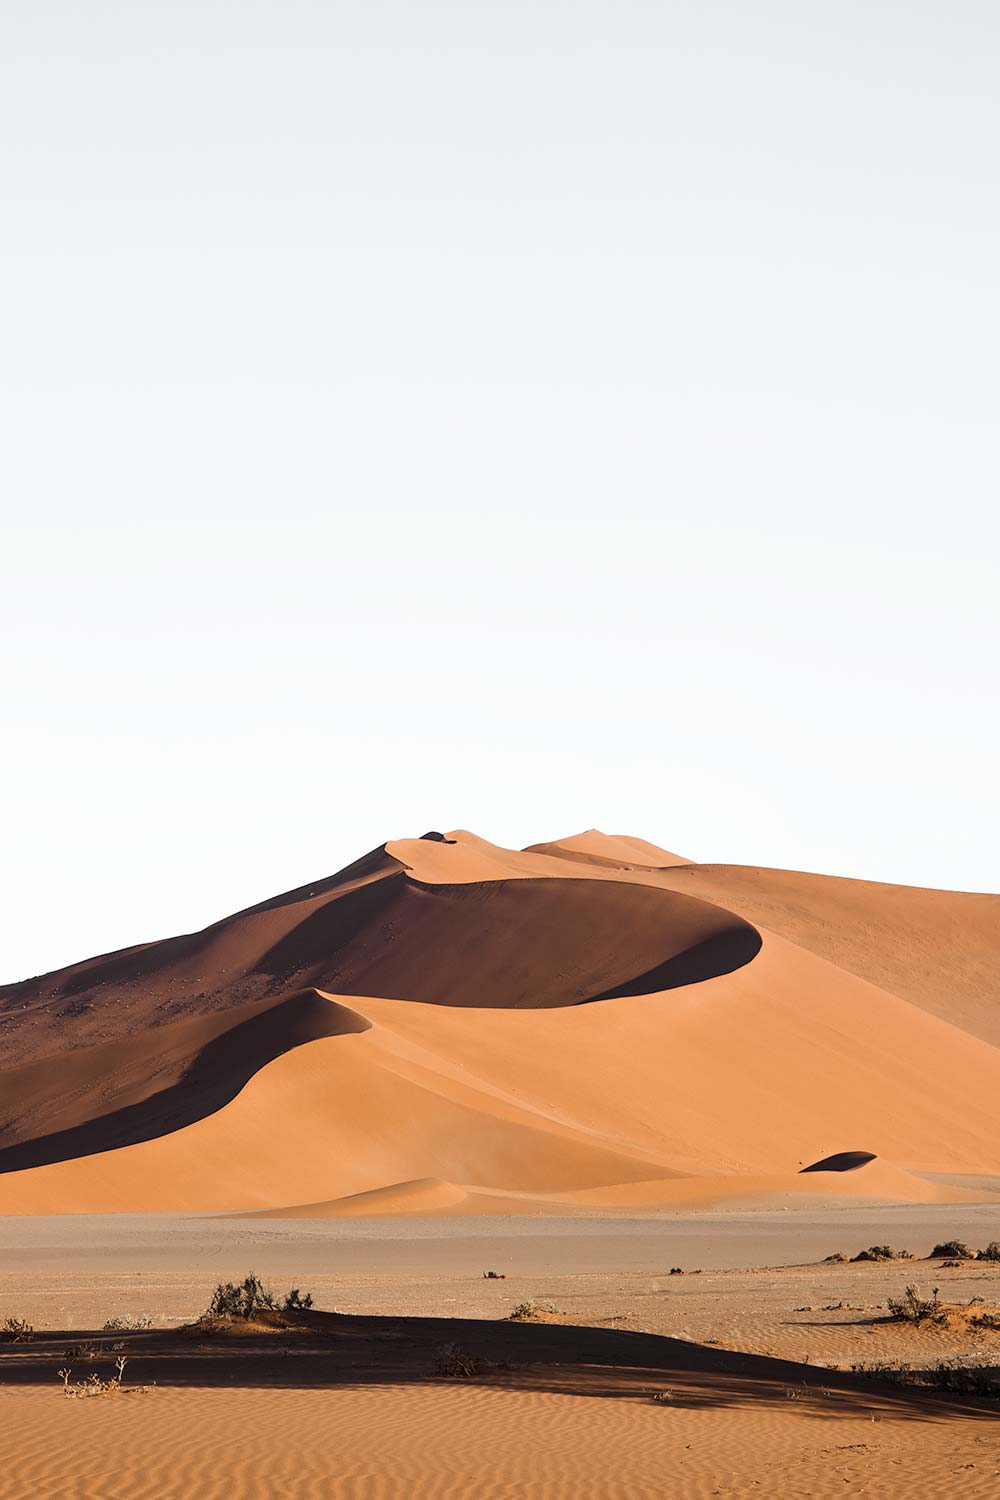 Big Momma dune is the largest dune in the Sossusvlei proximity